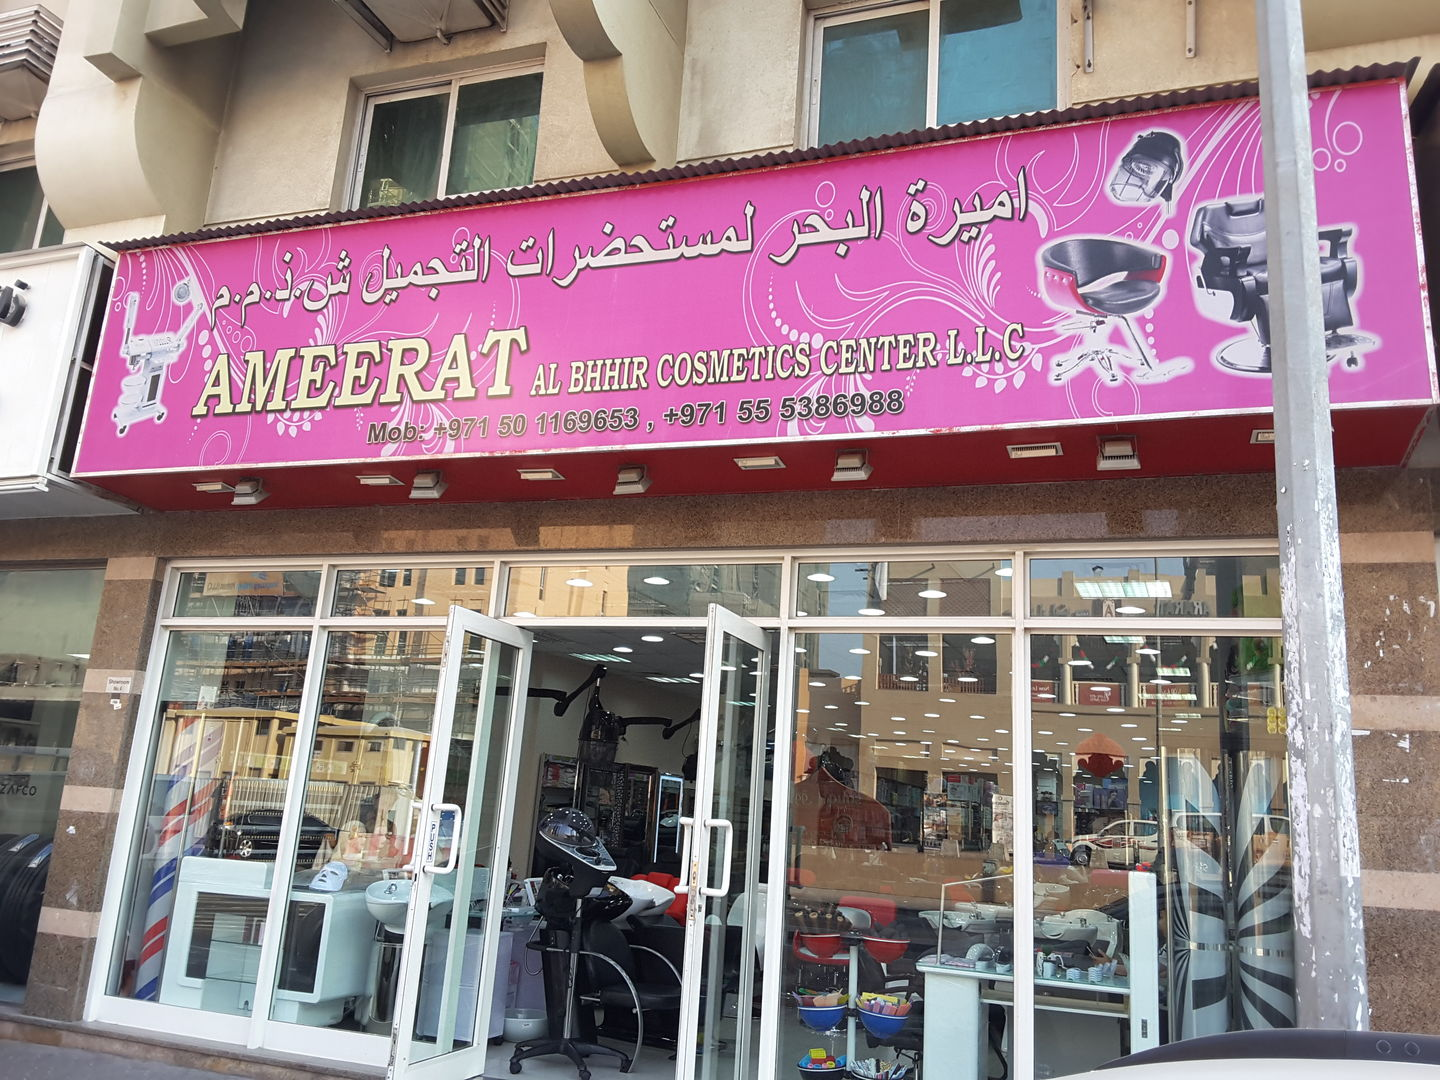 HiDubai-business-ameerat-al-bhhir-cosmetics-center-shopping-beauty-cosmetics-stores-naif-dubai-2